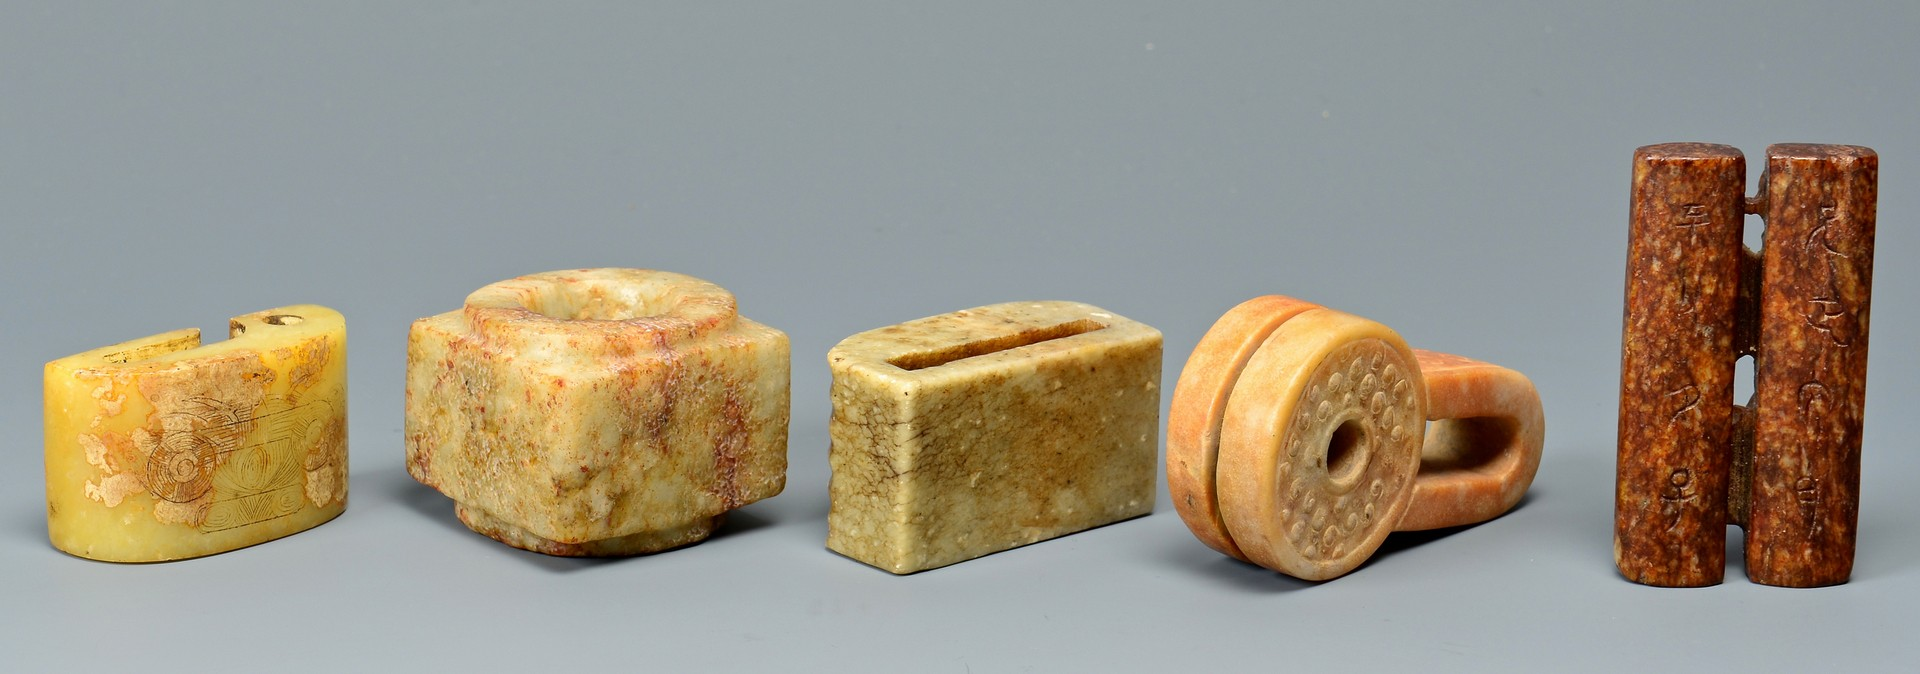 Lot 711: Chinese archer rings, cow & other hardstone items